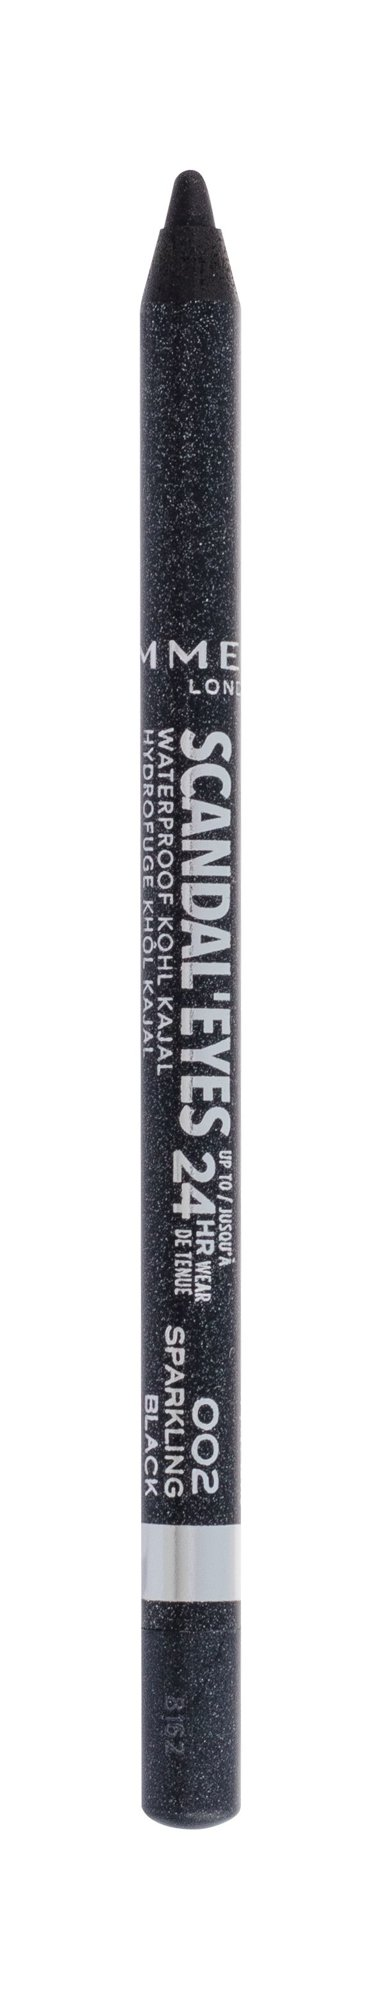 Rimmel London Scandal Eyes Eye Pencil 1,3ml 002 Sparkling Black